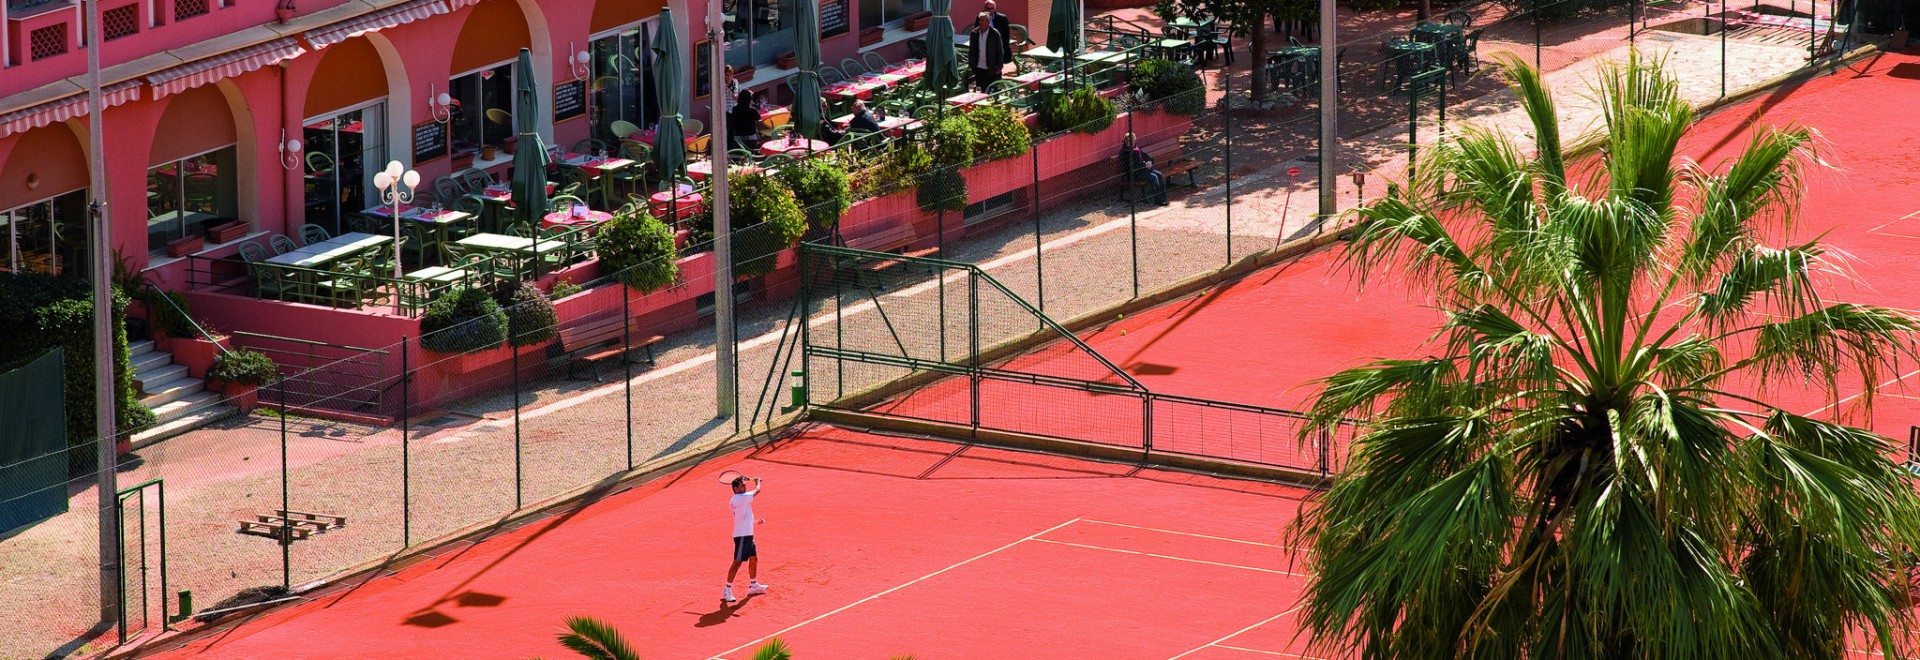 1-Week Tennis Training Camp - Nice Lawn Tennis Club, Nice